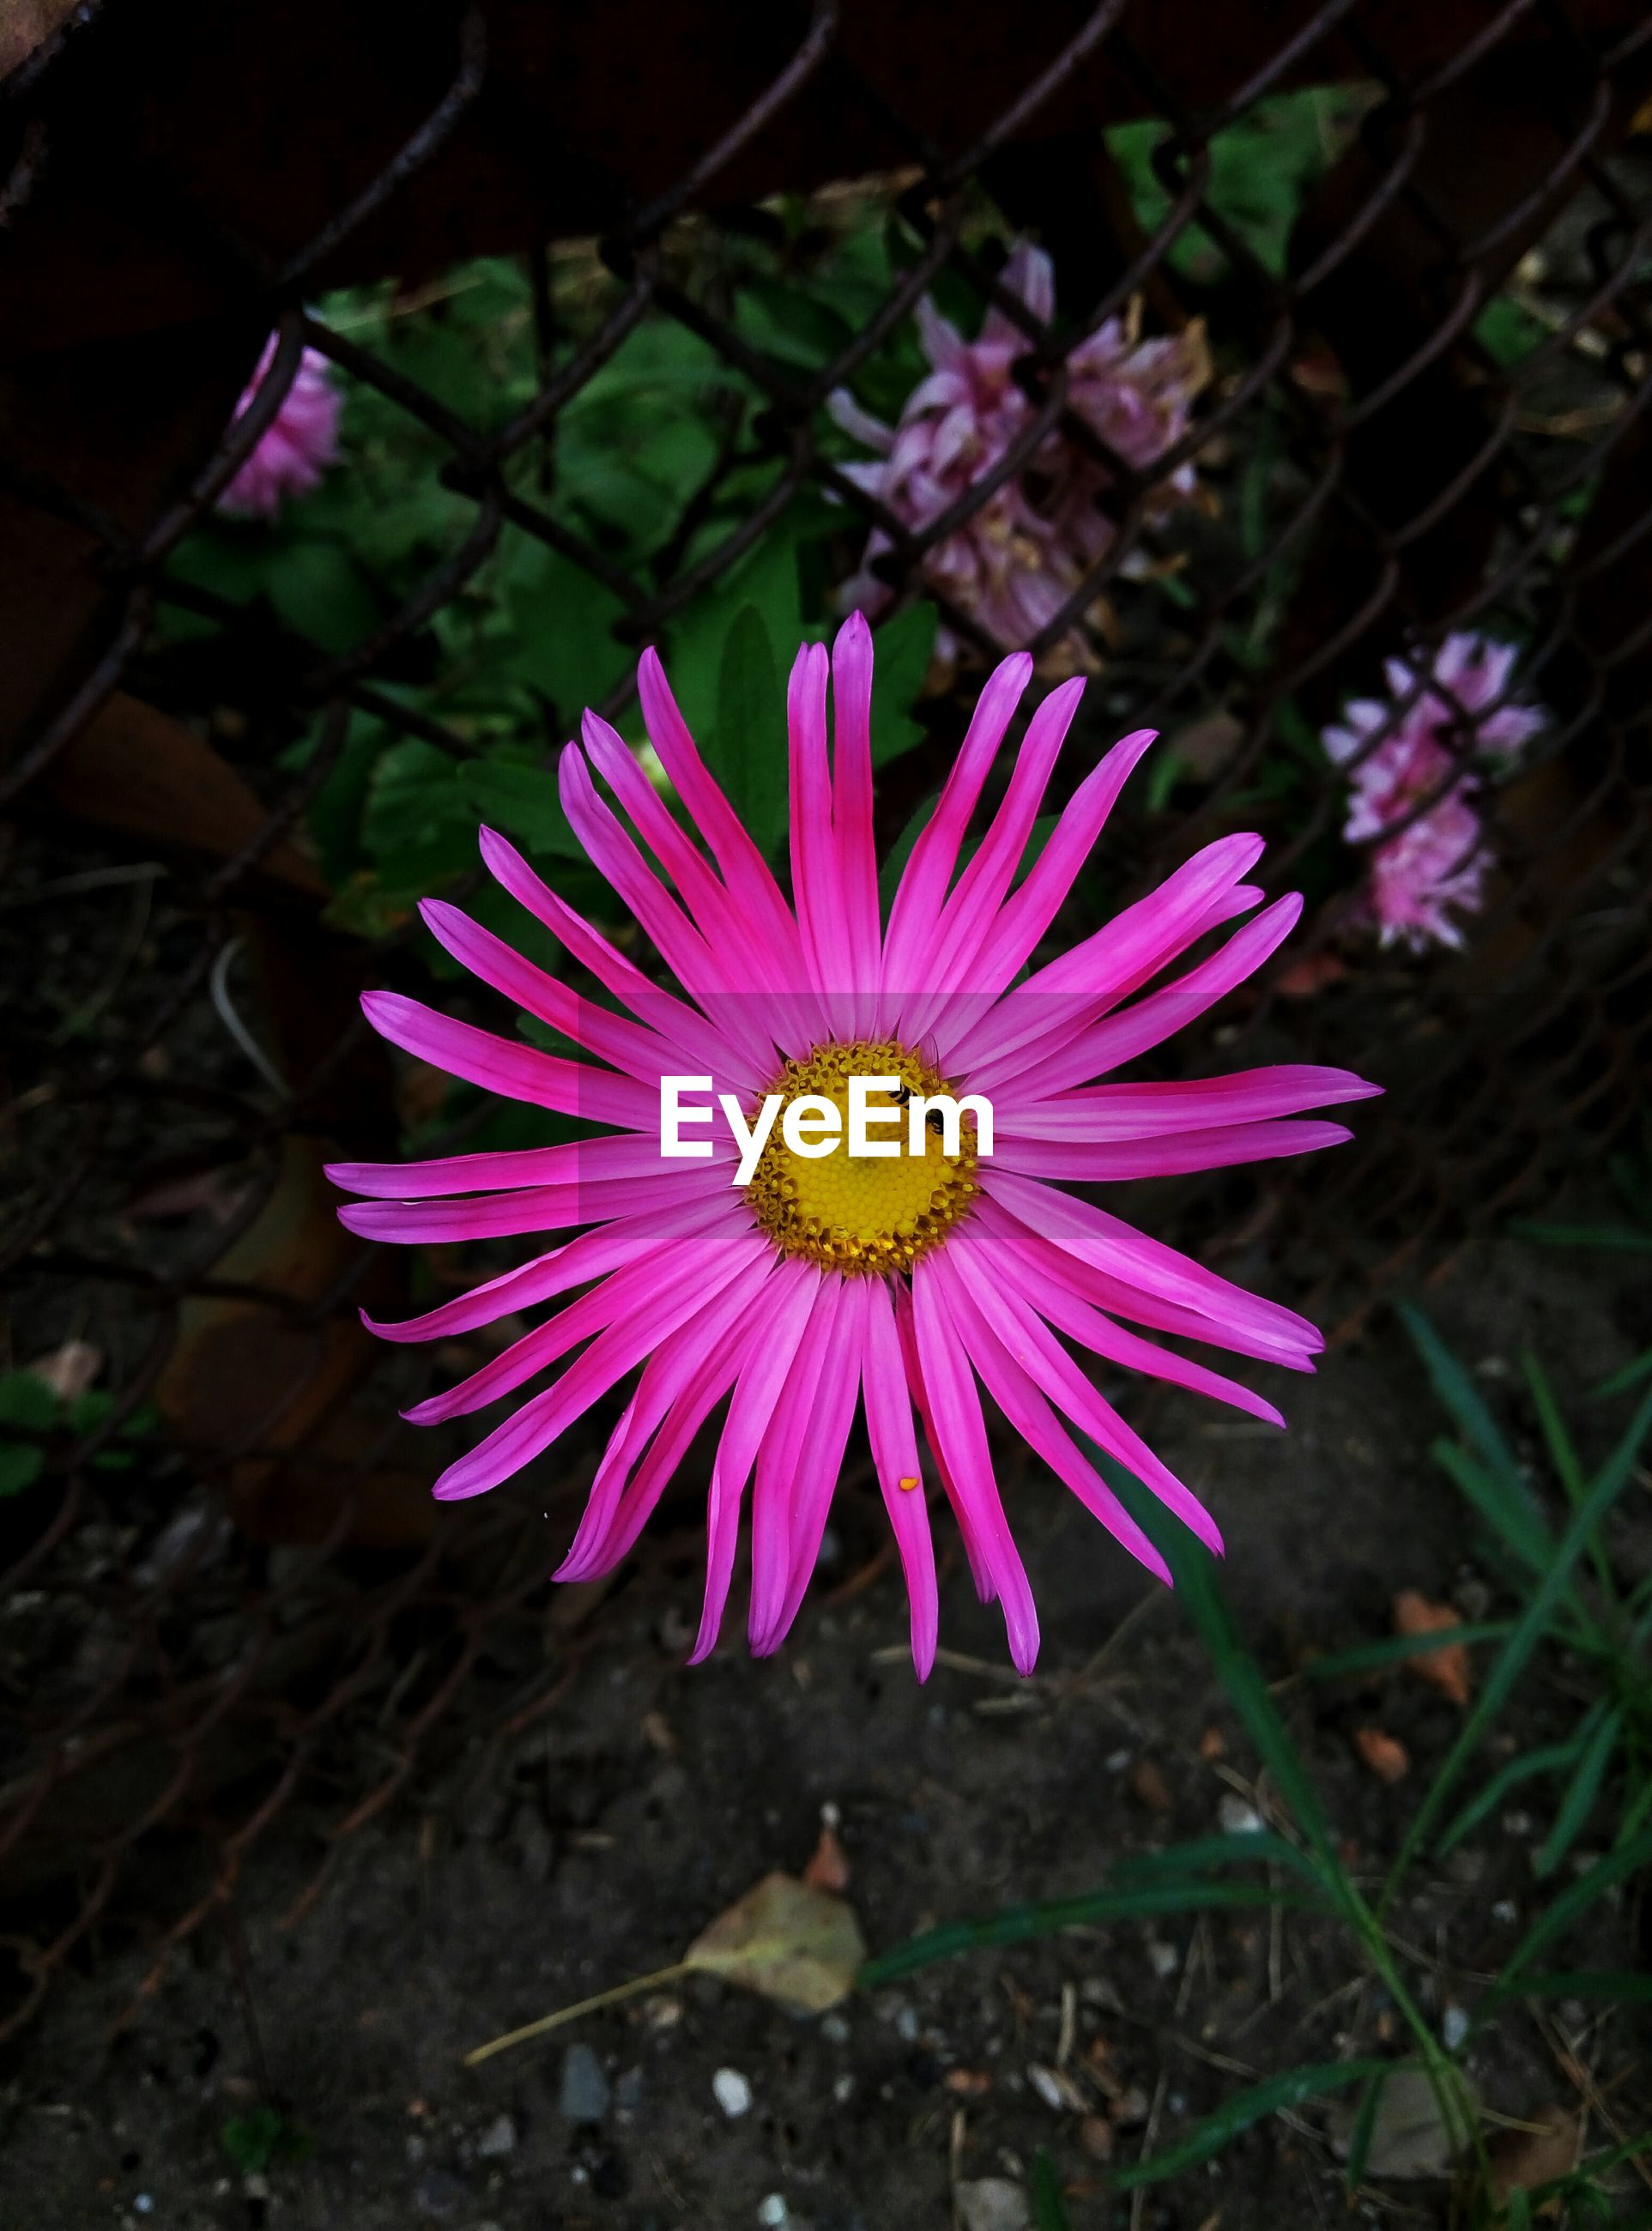 flower, freshness, fragility, flower head, petal, single flower, close-up, beauty in nature, growth, nature, springtime, in bloom, daisy, blossom, purple, plant, focus on foreground, blooming, pollen, botany, bloom, day, pink color, outdoors, vibrant color, no people